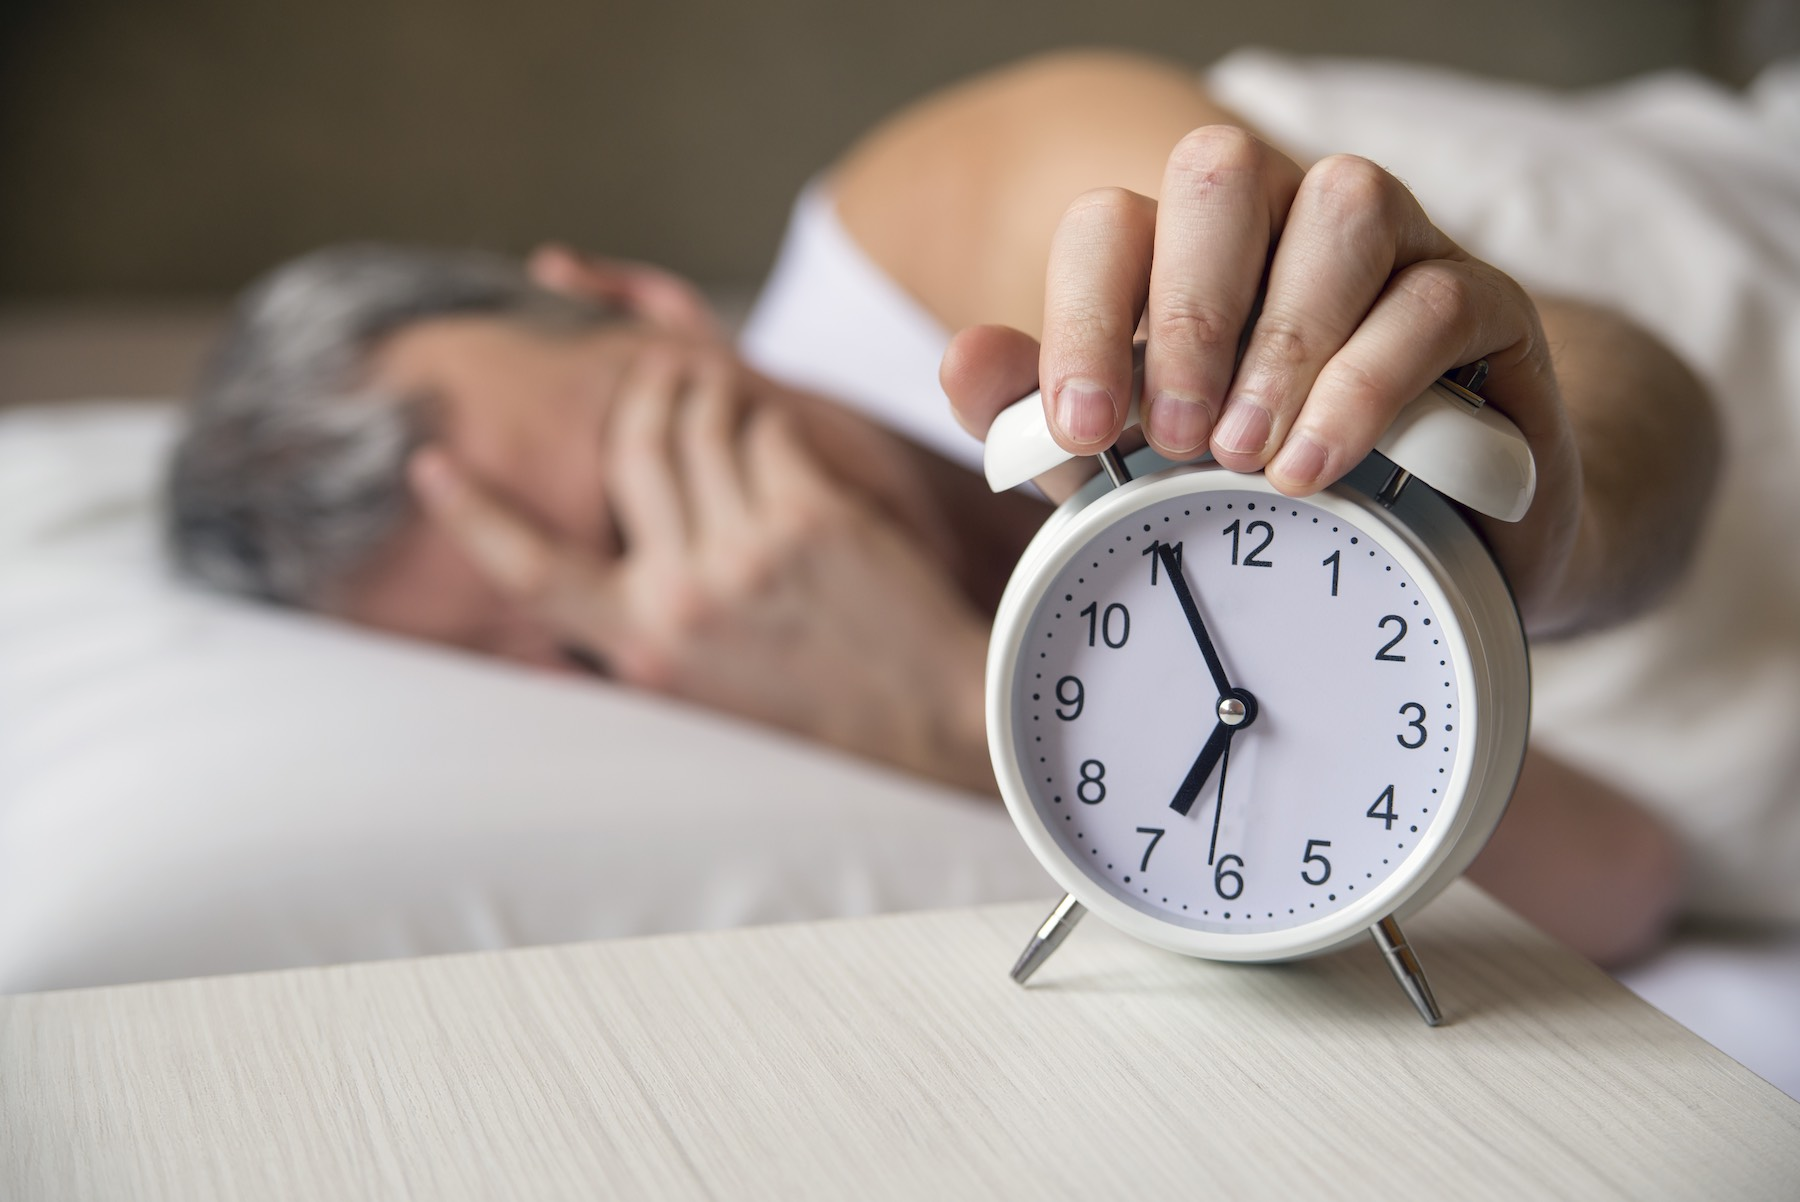 Man lying in bed turning off an alarm clock in the morning at 7am. Attractive man sleeping in his bedroom. Annoyed man being awakened by an alarm clock in his bedroom